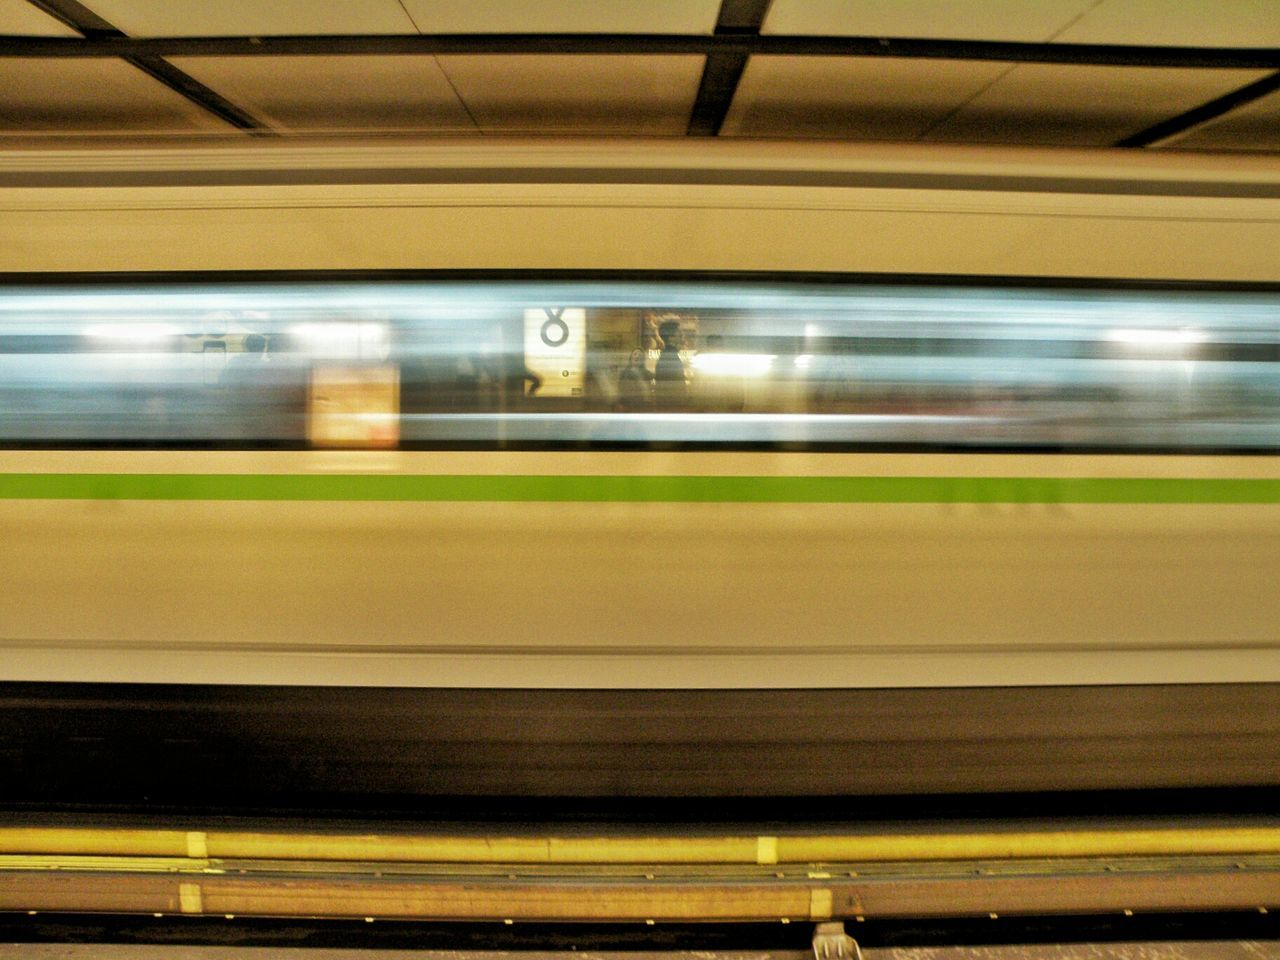 Athens, Greece Athens Subway Station Metro Station Platform Life In Motion Train Motion Blur Motion Transperancy Photography In Motion